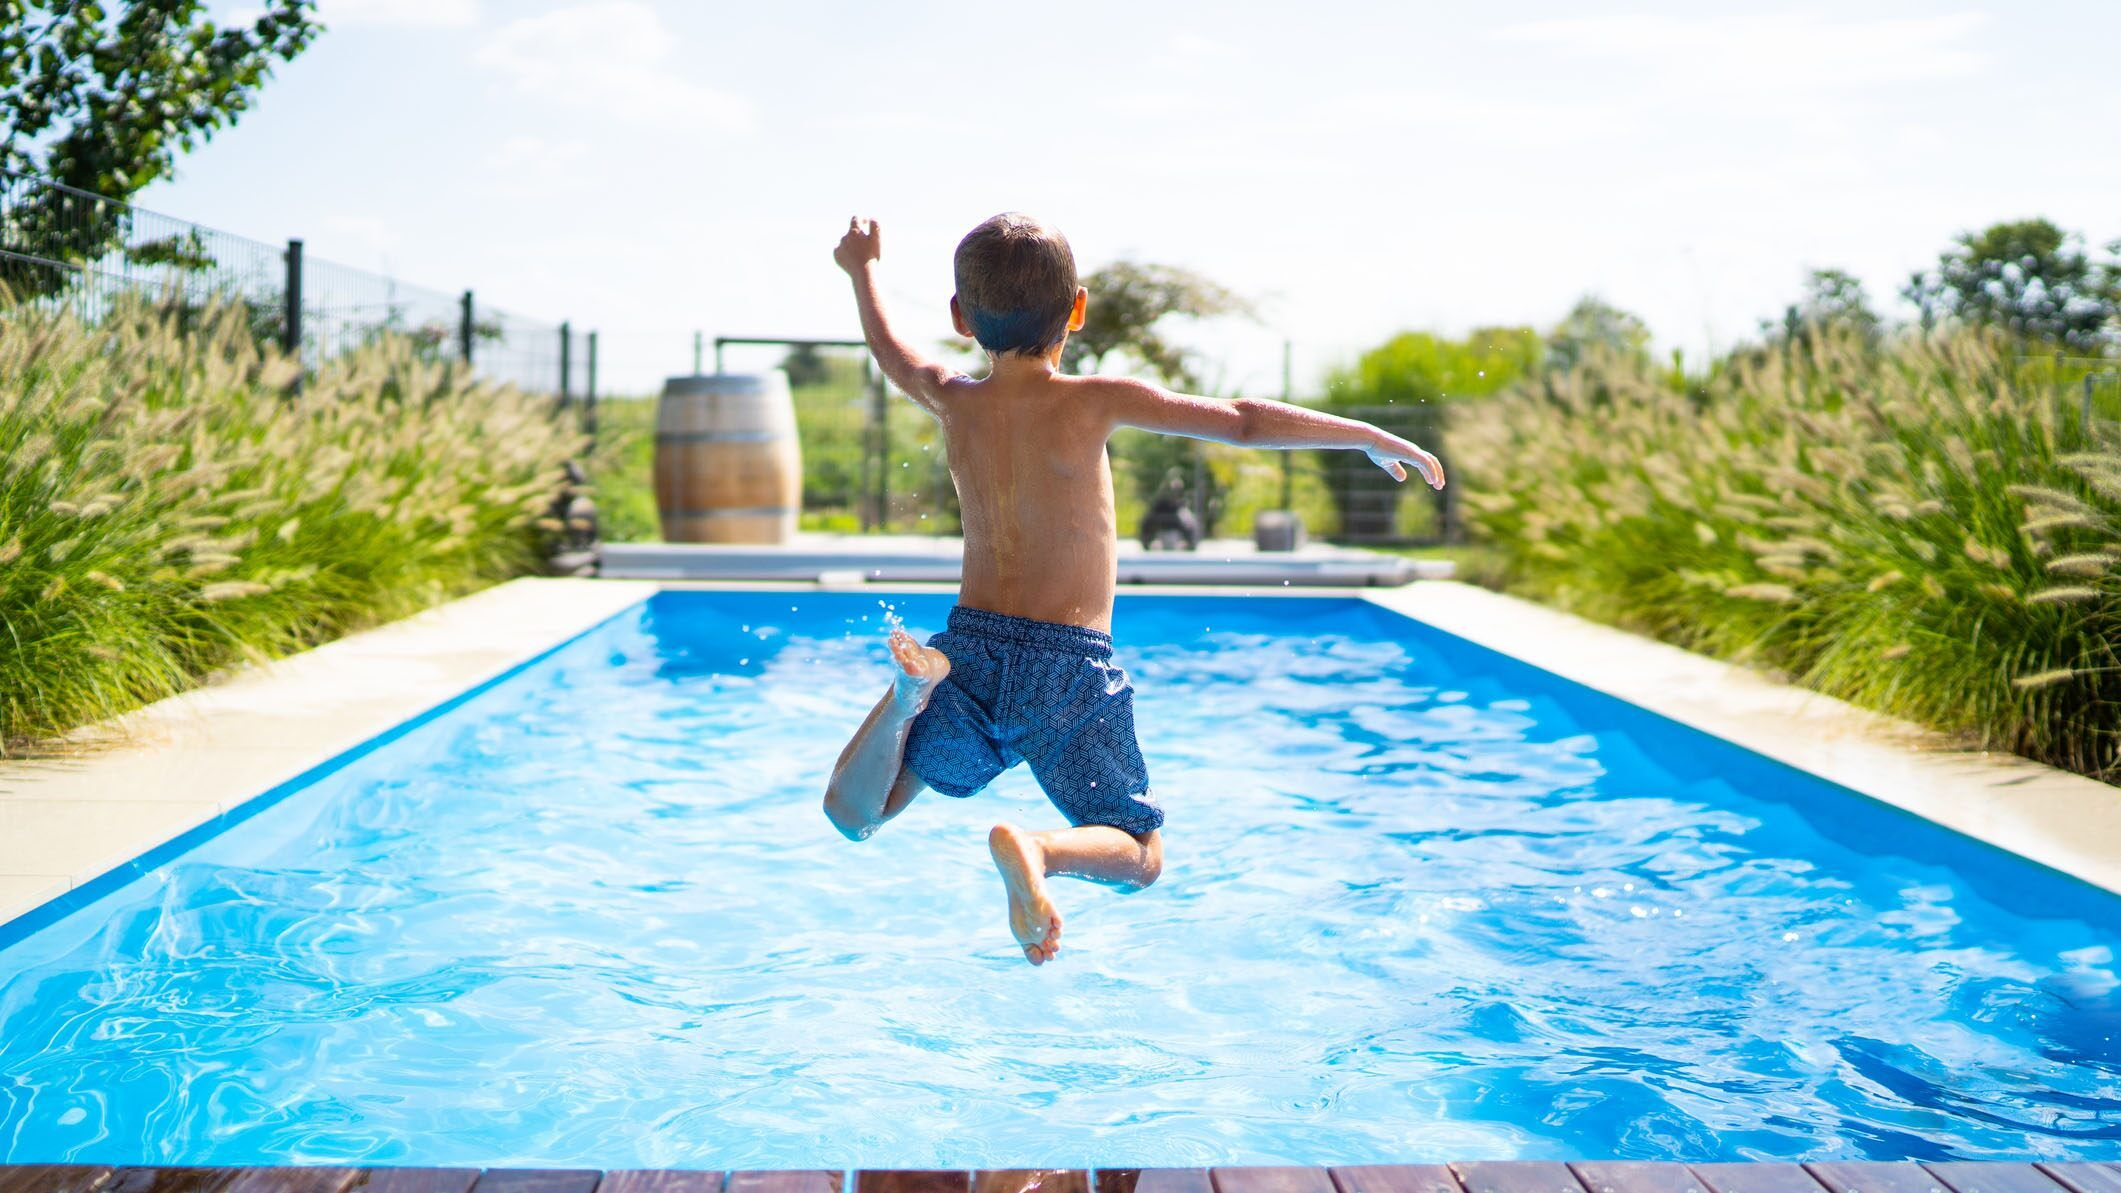 Casdesign Owning A Swimming Pool May Seem Cool But Your Wallet Might Not Love It Swimming Pools Pool Pool Installation